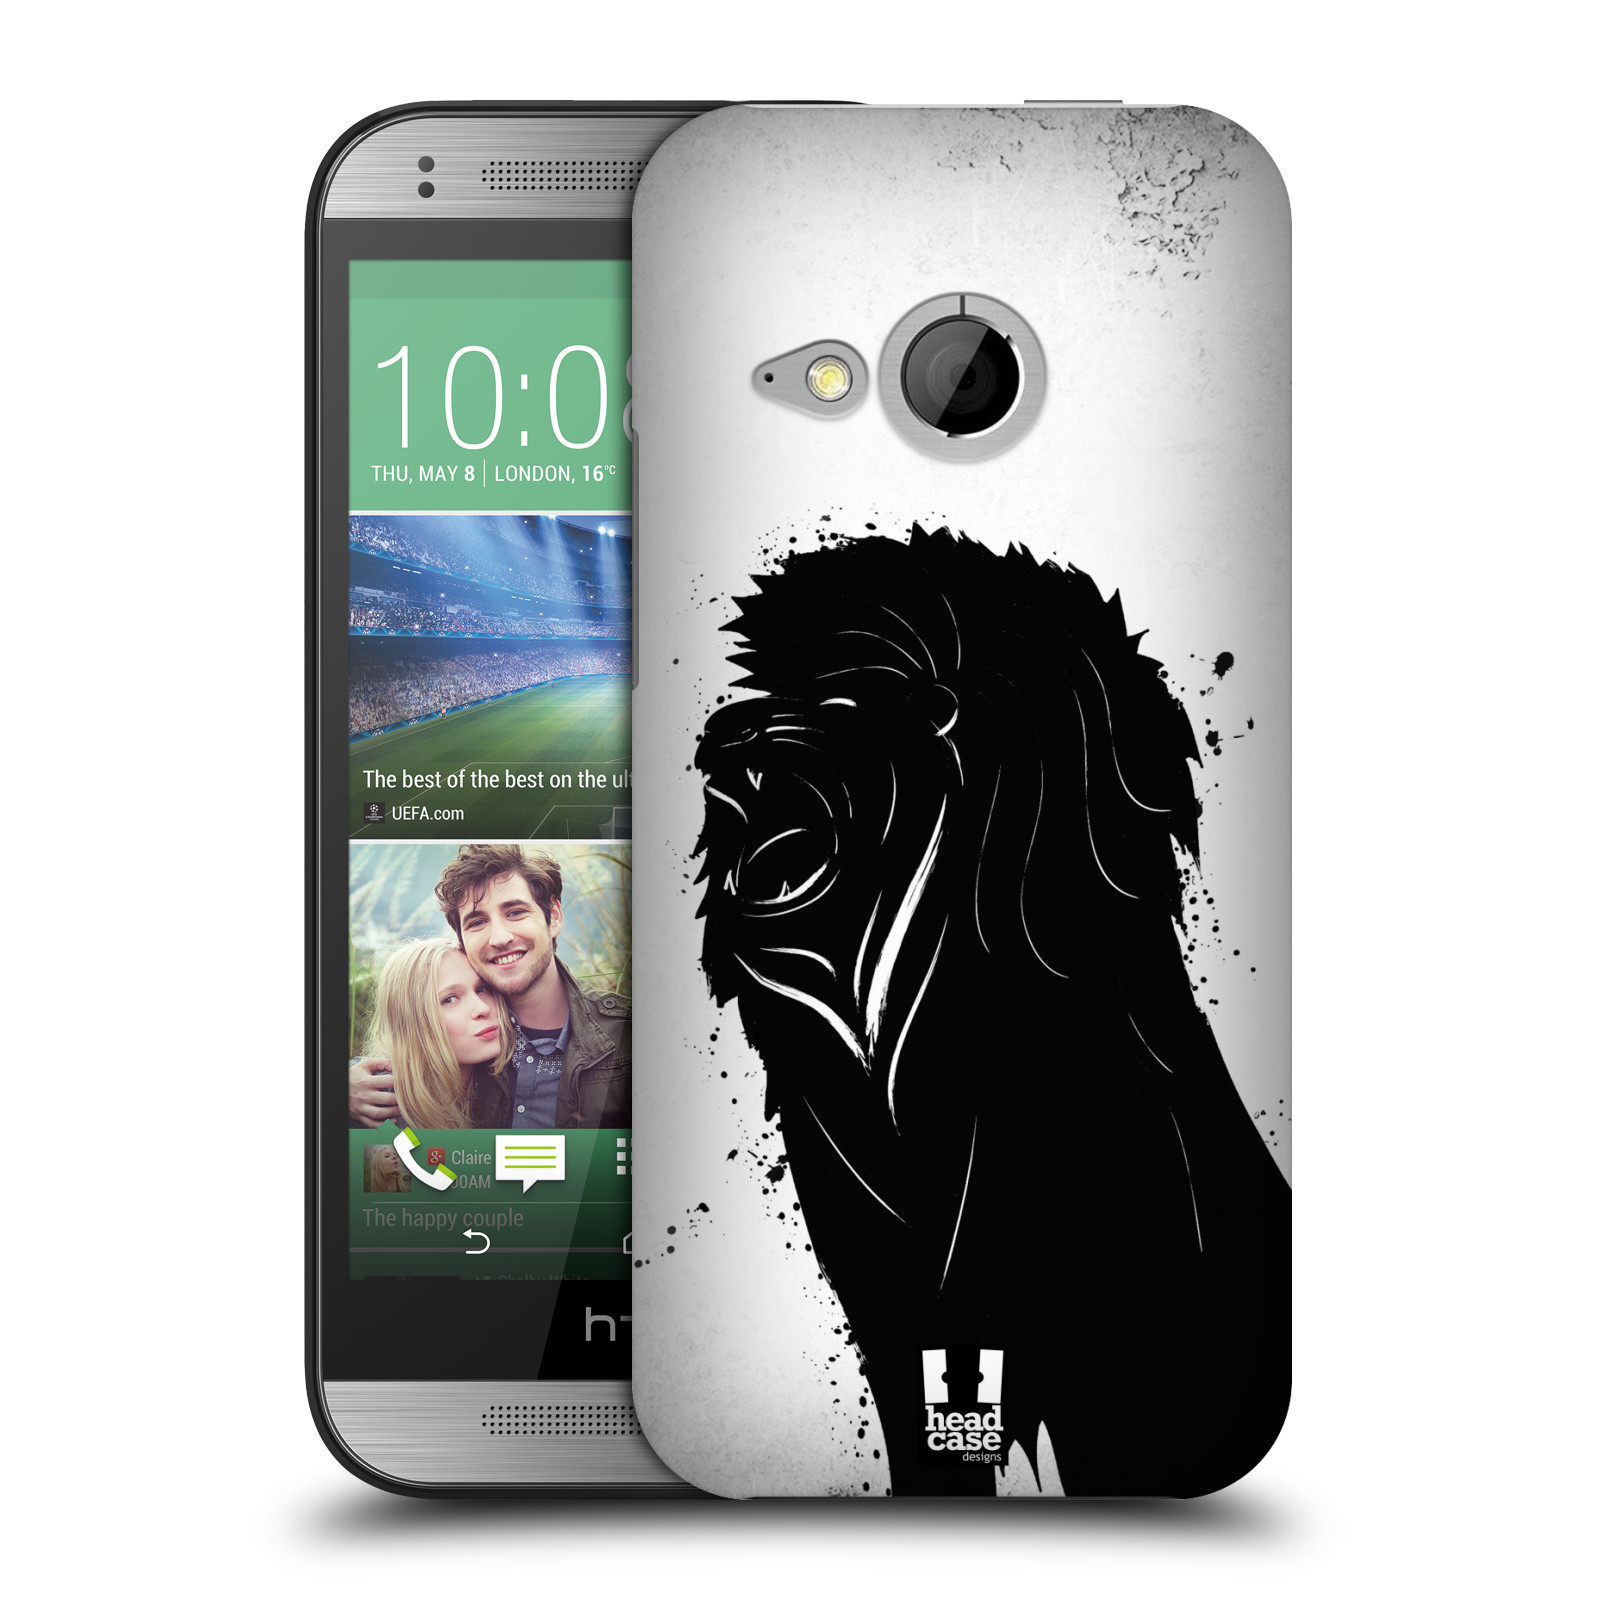 HEAD CASE DESIGNS ANIMAL INK BLOTS HARD BACK CASE FOR HTC ONE MINI 2